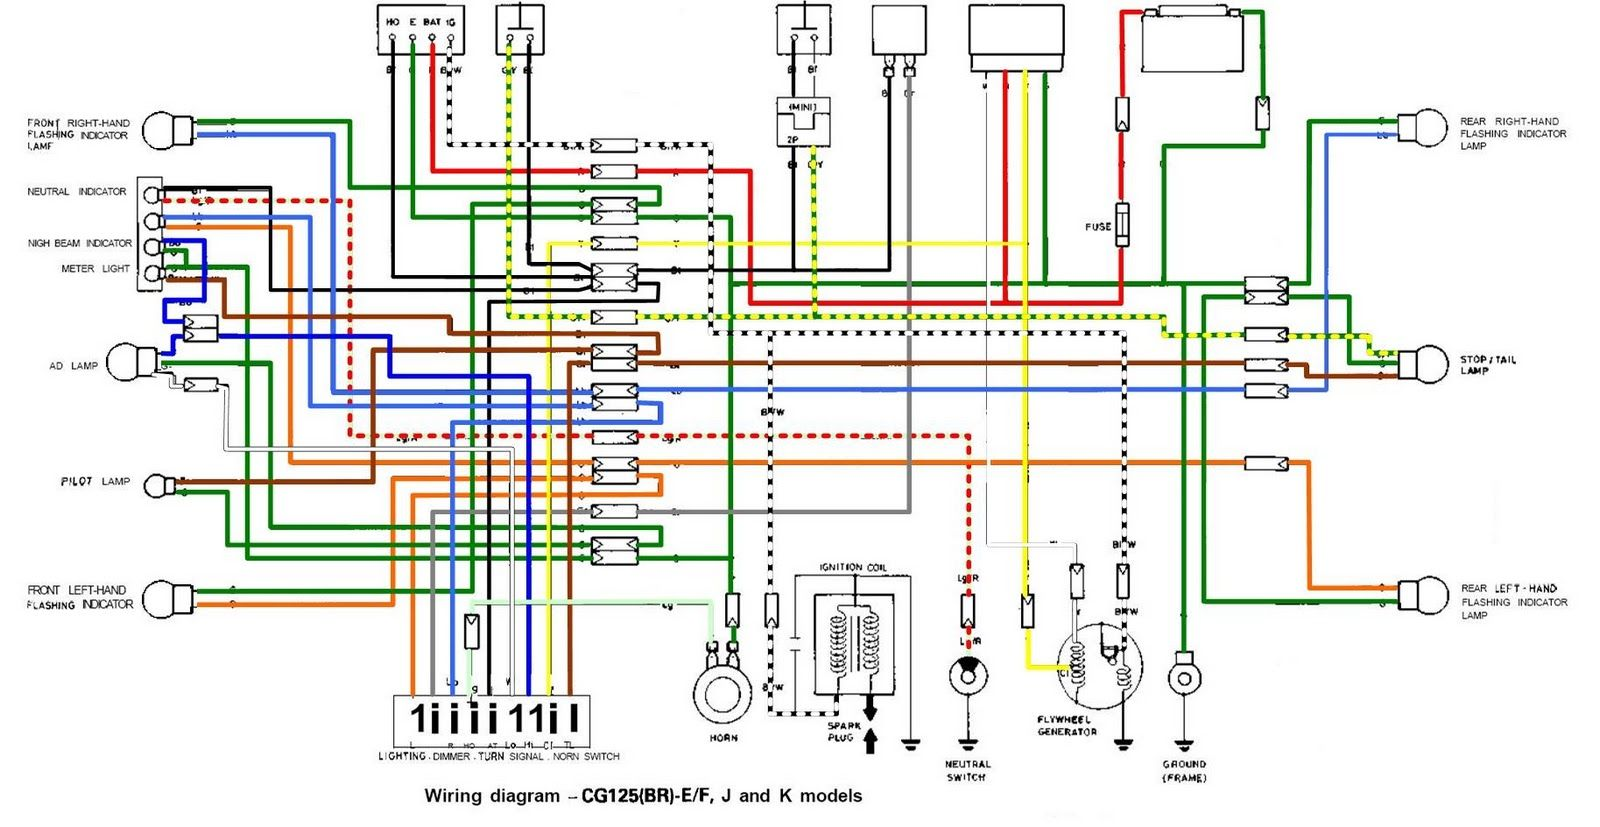 Honda Cg125 Wiring Diagram Single Cylinder Engine Jpg 1600 827 Motorcycle Wiring Honda 125 Electrical Diagram